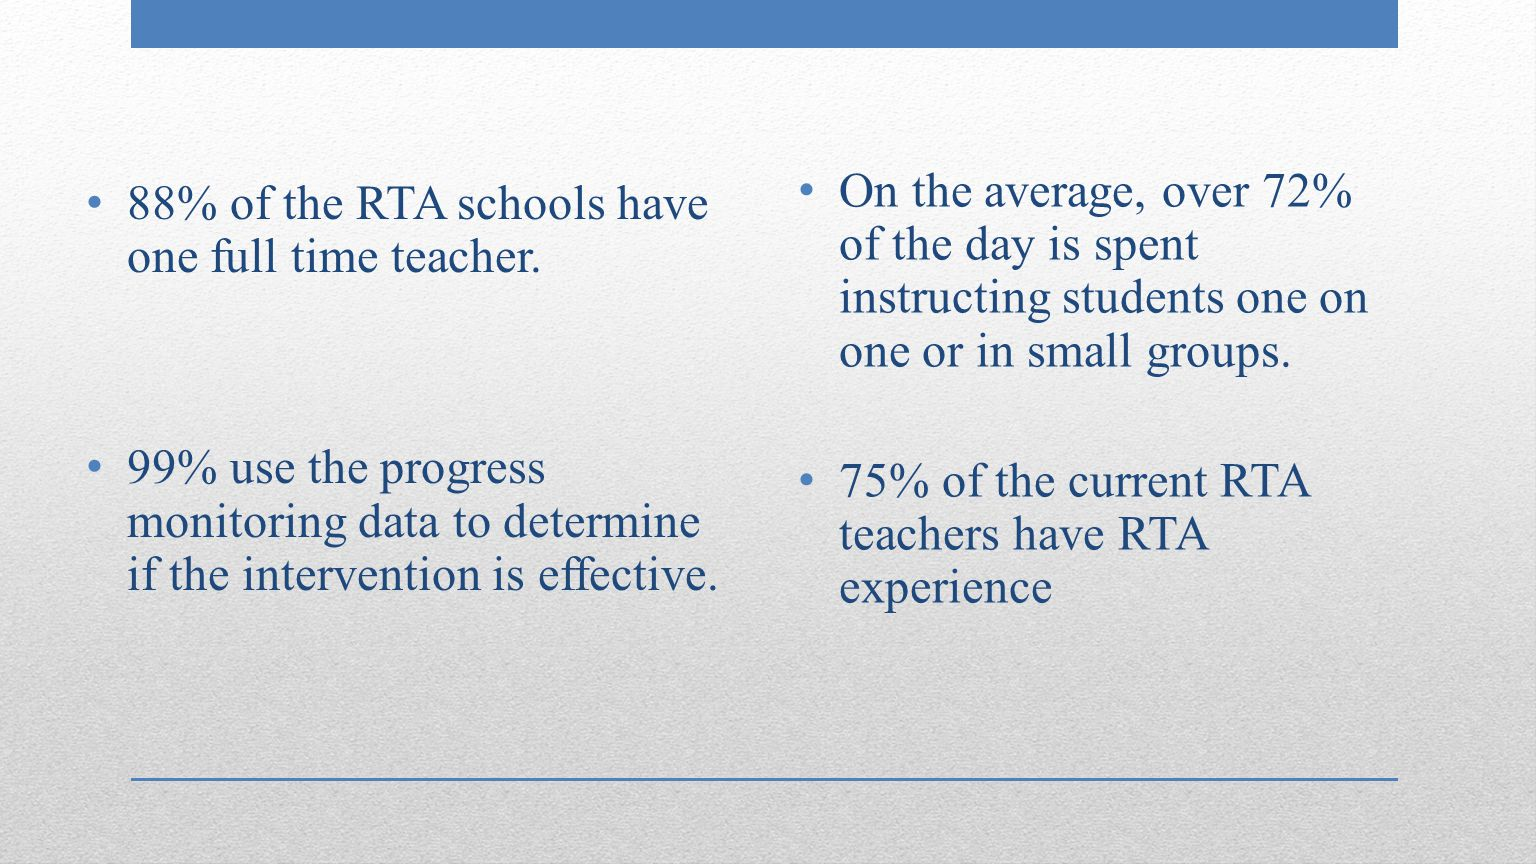 88% of the RTA schools have one full time teacher.